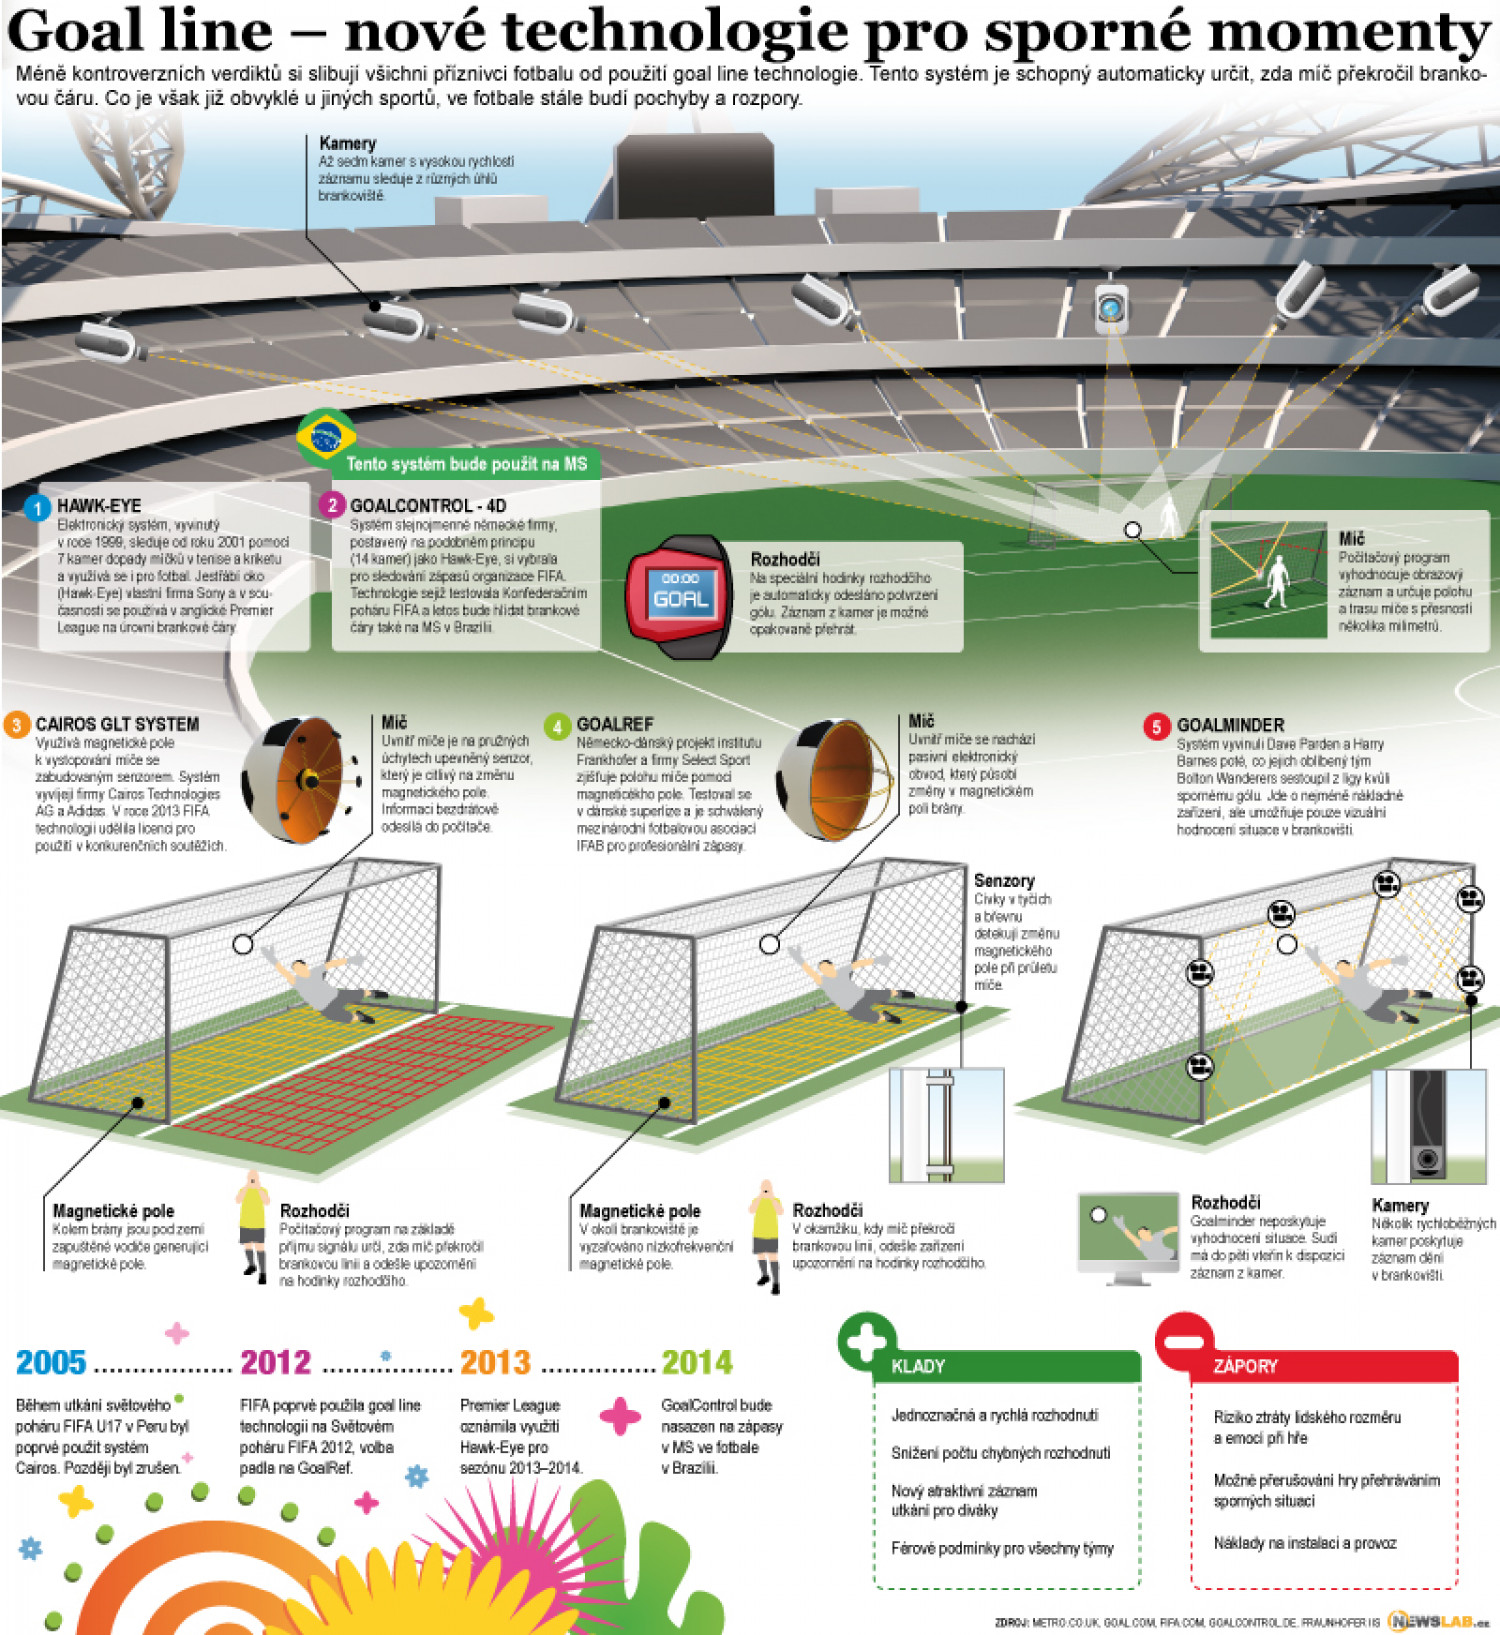 persuasive essay on goal line technology For years now the technology to judge whether the whole ball has crossed the goal line has existed there are two well known systems: sony's hawk-eye and the german alternative, goalref.